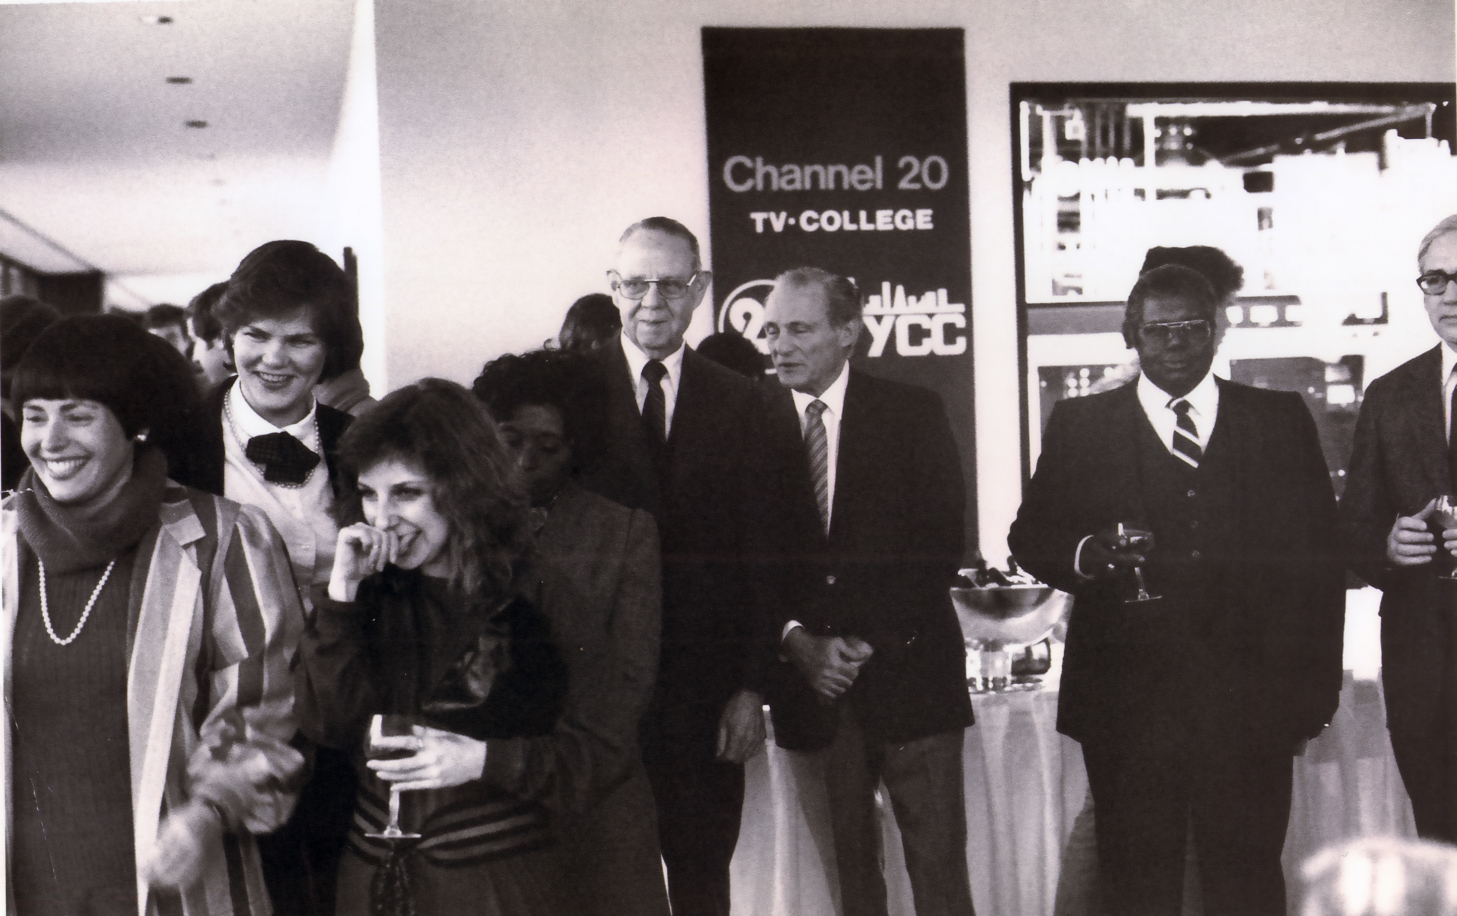 The Premiere Broadcast. L-R: (front row) Elynne Chaplik-Aleskow; Shelly Pazzol, director of Public Relations (second row)  Ginny McGann, director of station operations; unidentifield board member; (back row) unidentified board member, Chancellor Oscar Shabat, two unidentifield board members